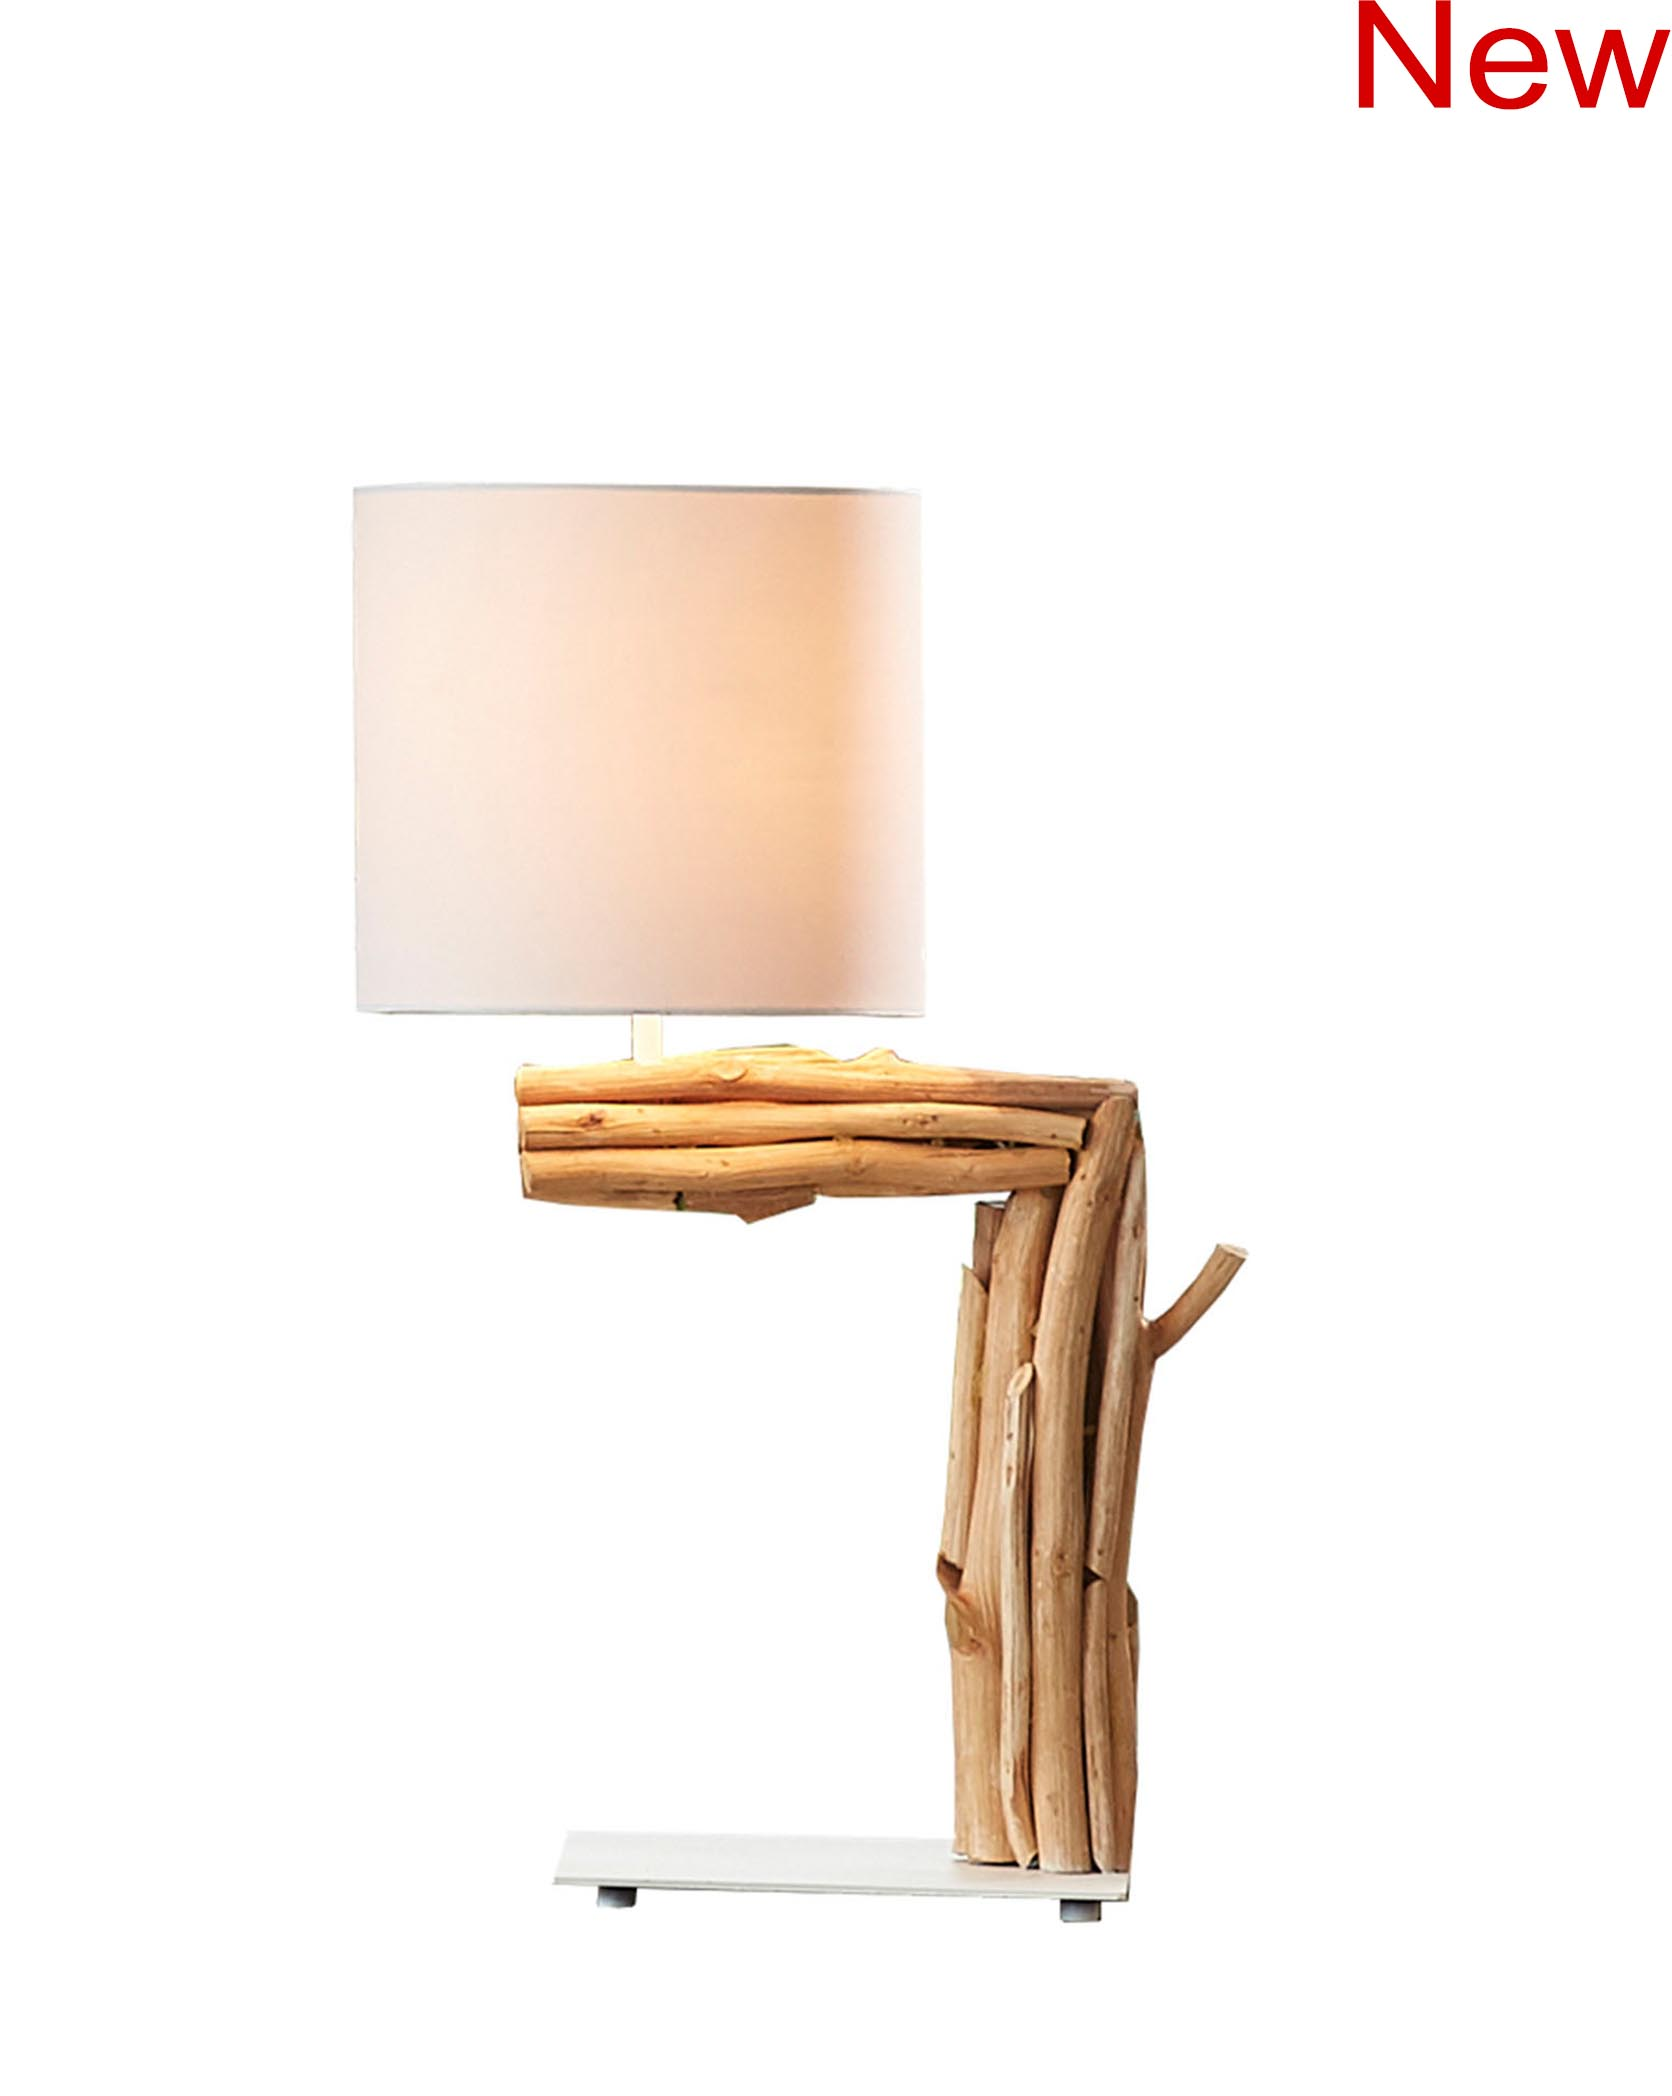 Driftwood Lamps Mother Of Pearl Lamps Ceramic Lamps